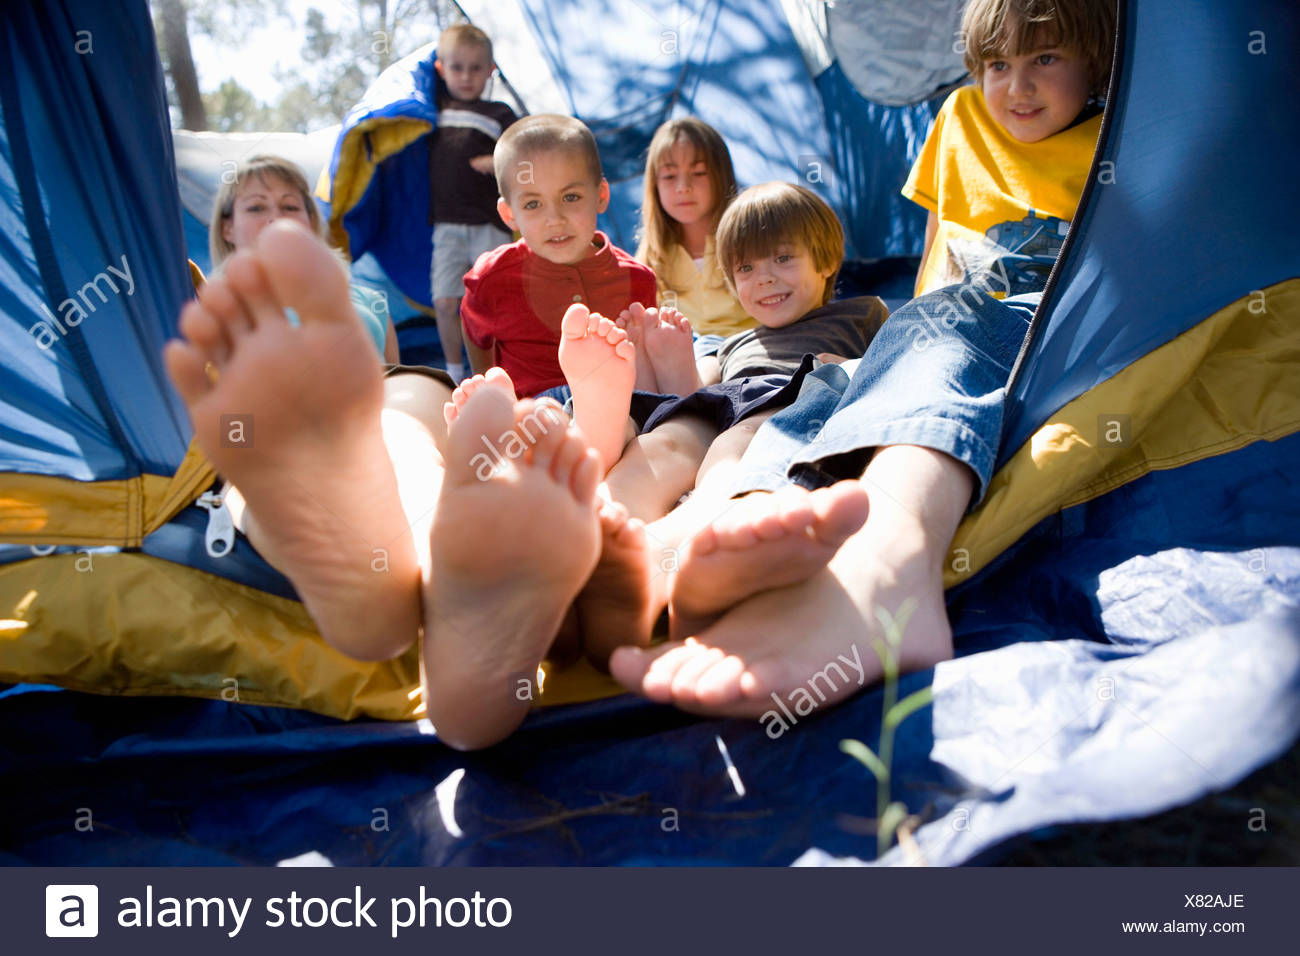 A woman and a group of children piled up in a tent - Stock Image